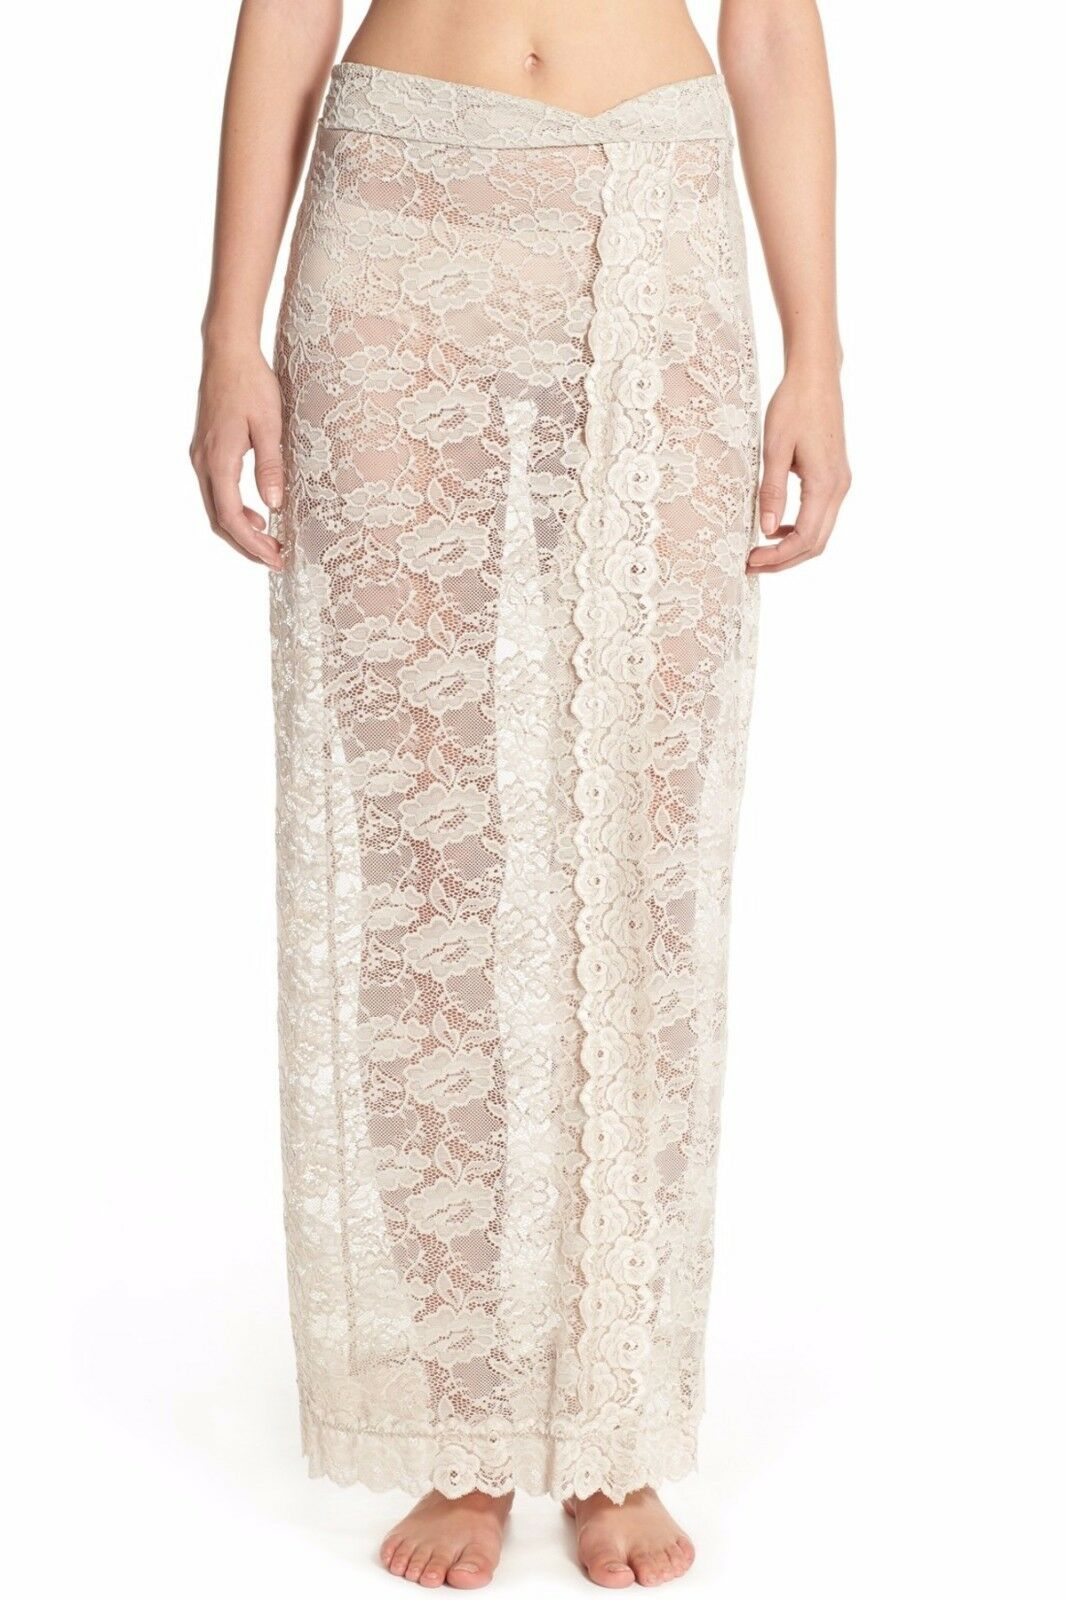 118 NWT FREE PEOPLE SzS SCALLOPED SHEER LACE HALF SLIP-MAXI SKIRT IN OATMEAL